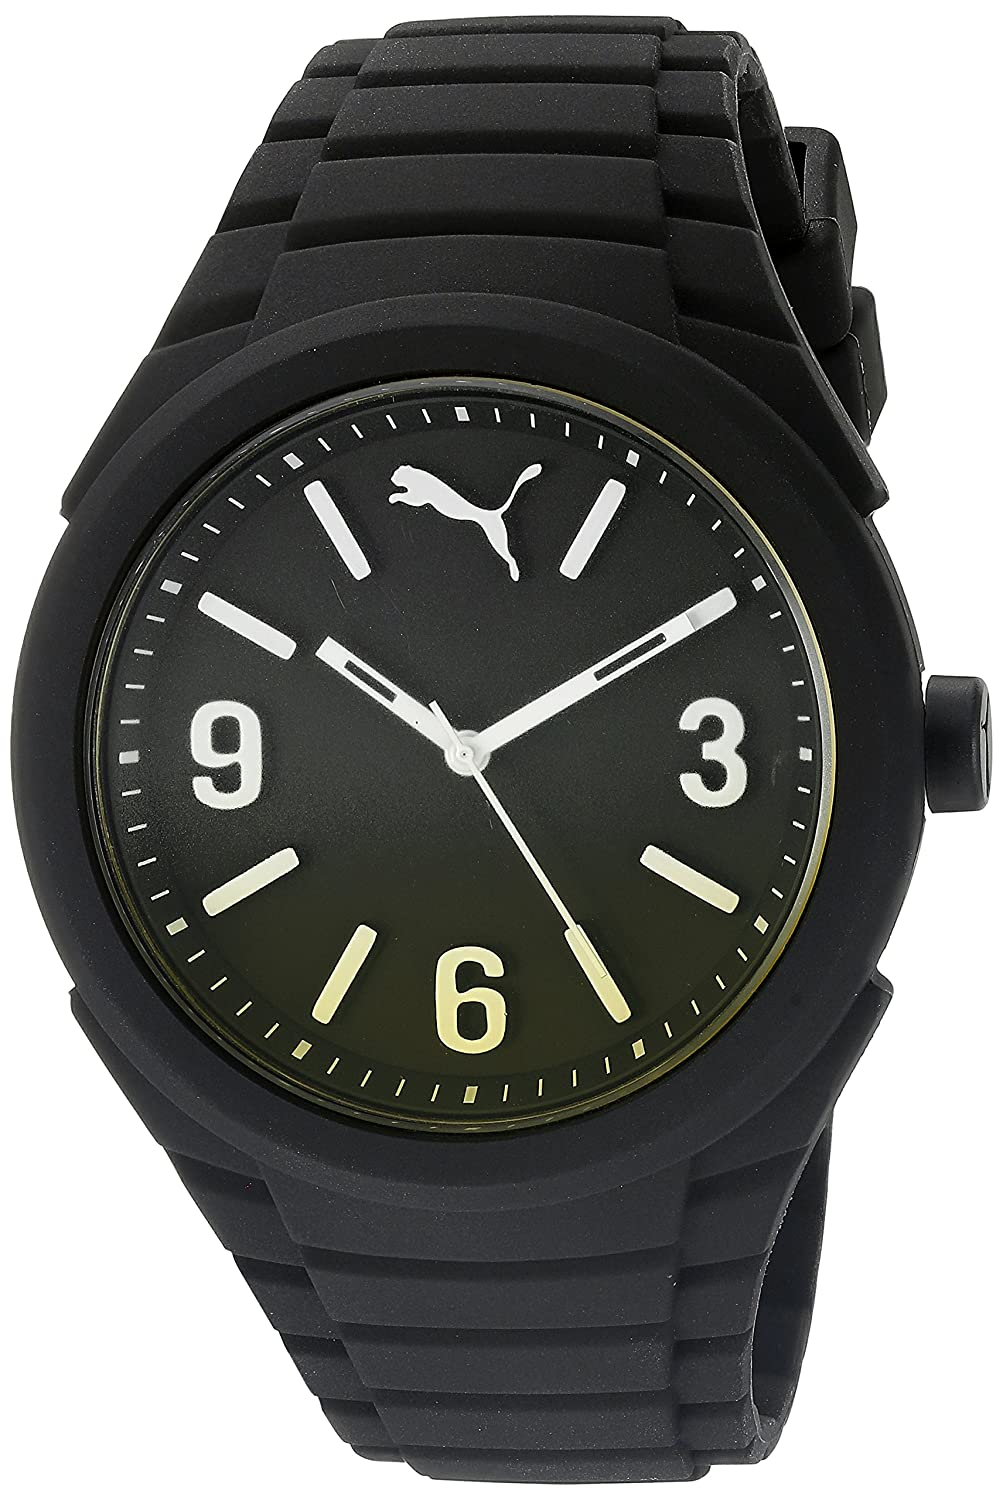 PUMA Unisex Gummy Pop-Color Watch - $27.99 (Reg. $85)